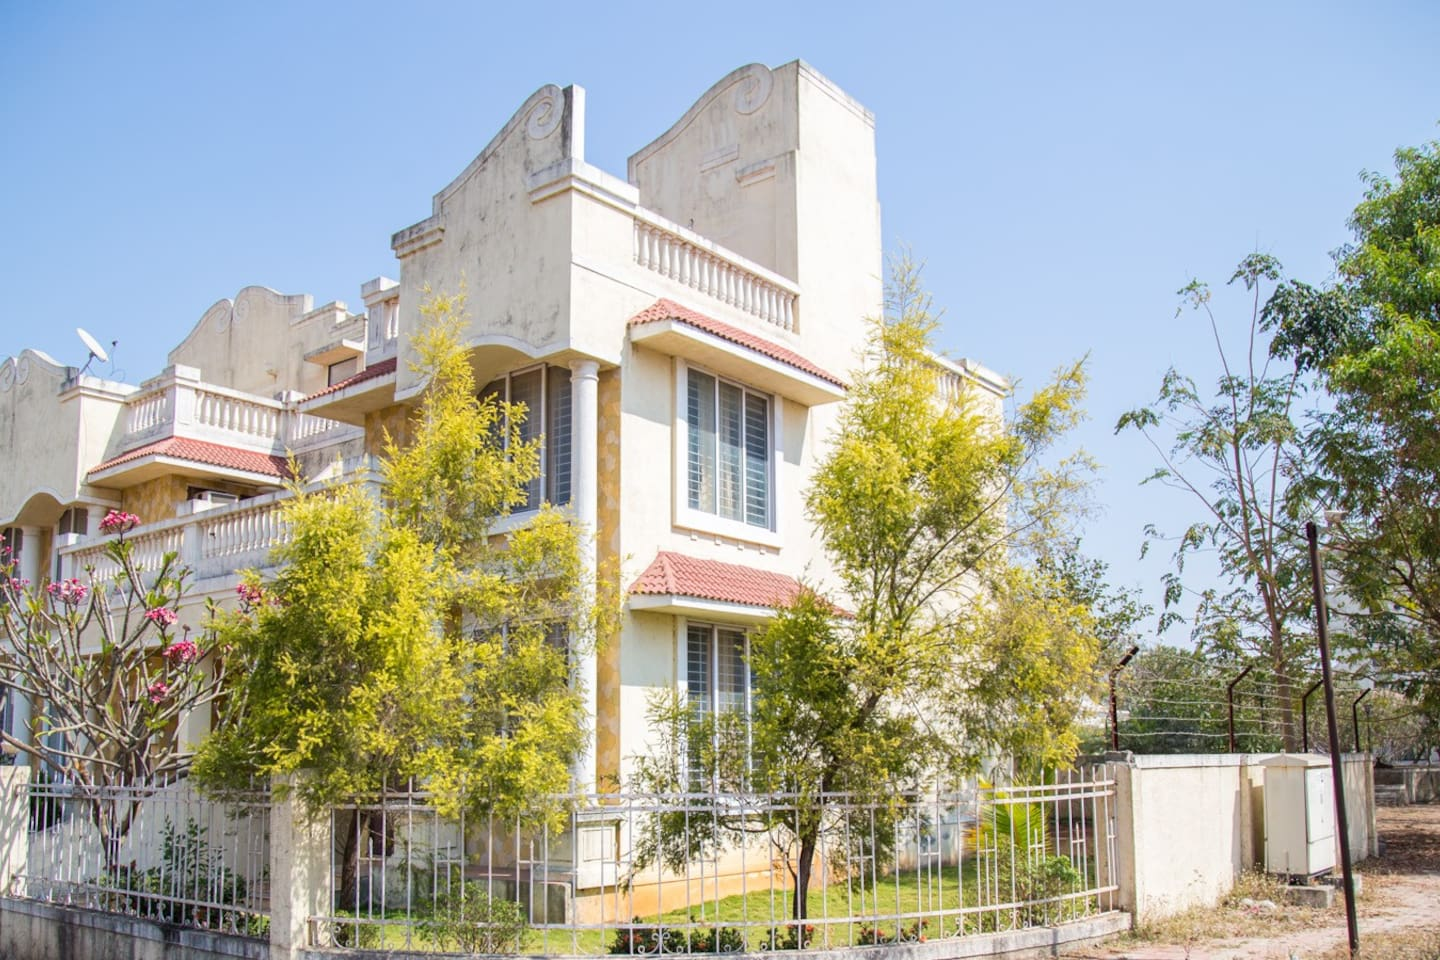 Beautiful 3BHK villa with 2000 sq ft lawn, private parking, 4 terraces in a beautiful location